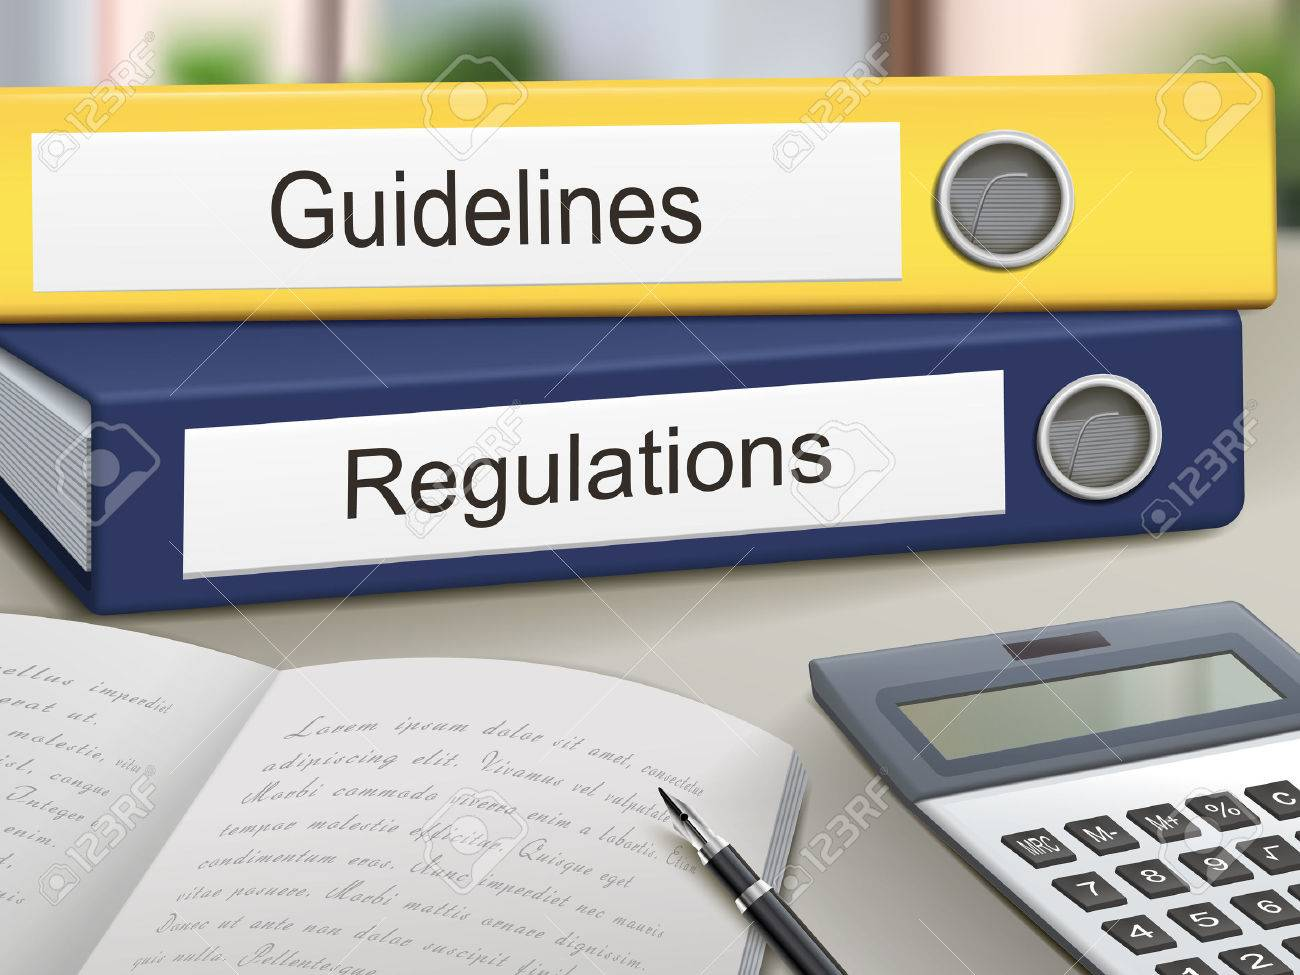 guidelines and regulations binders isolated on the office table - 35449574